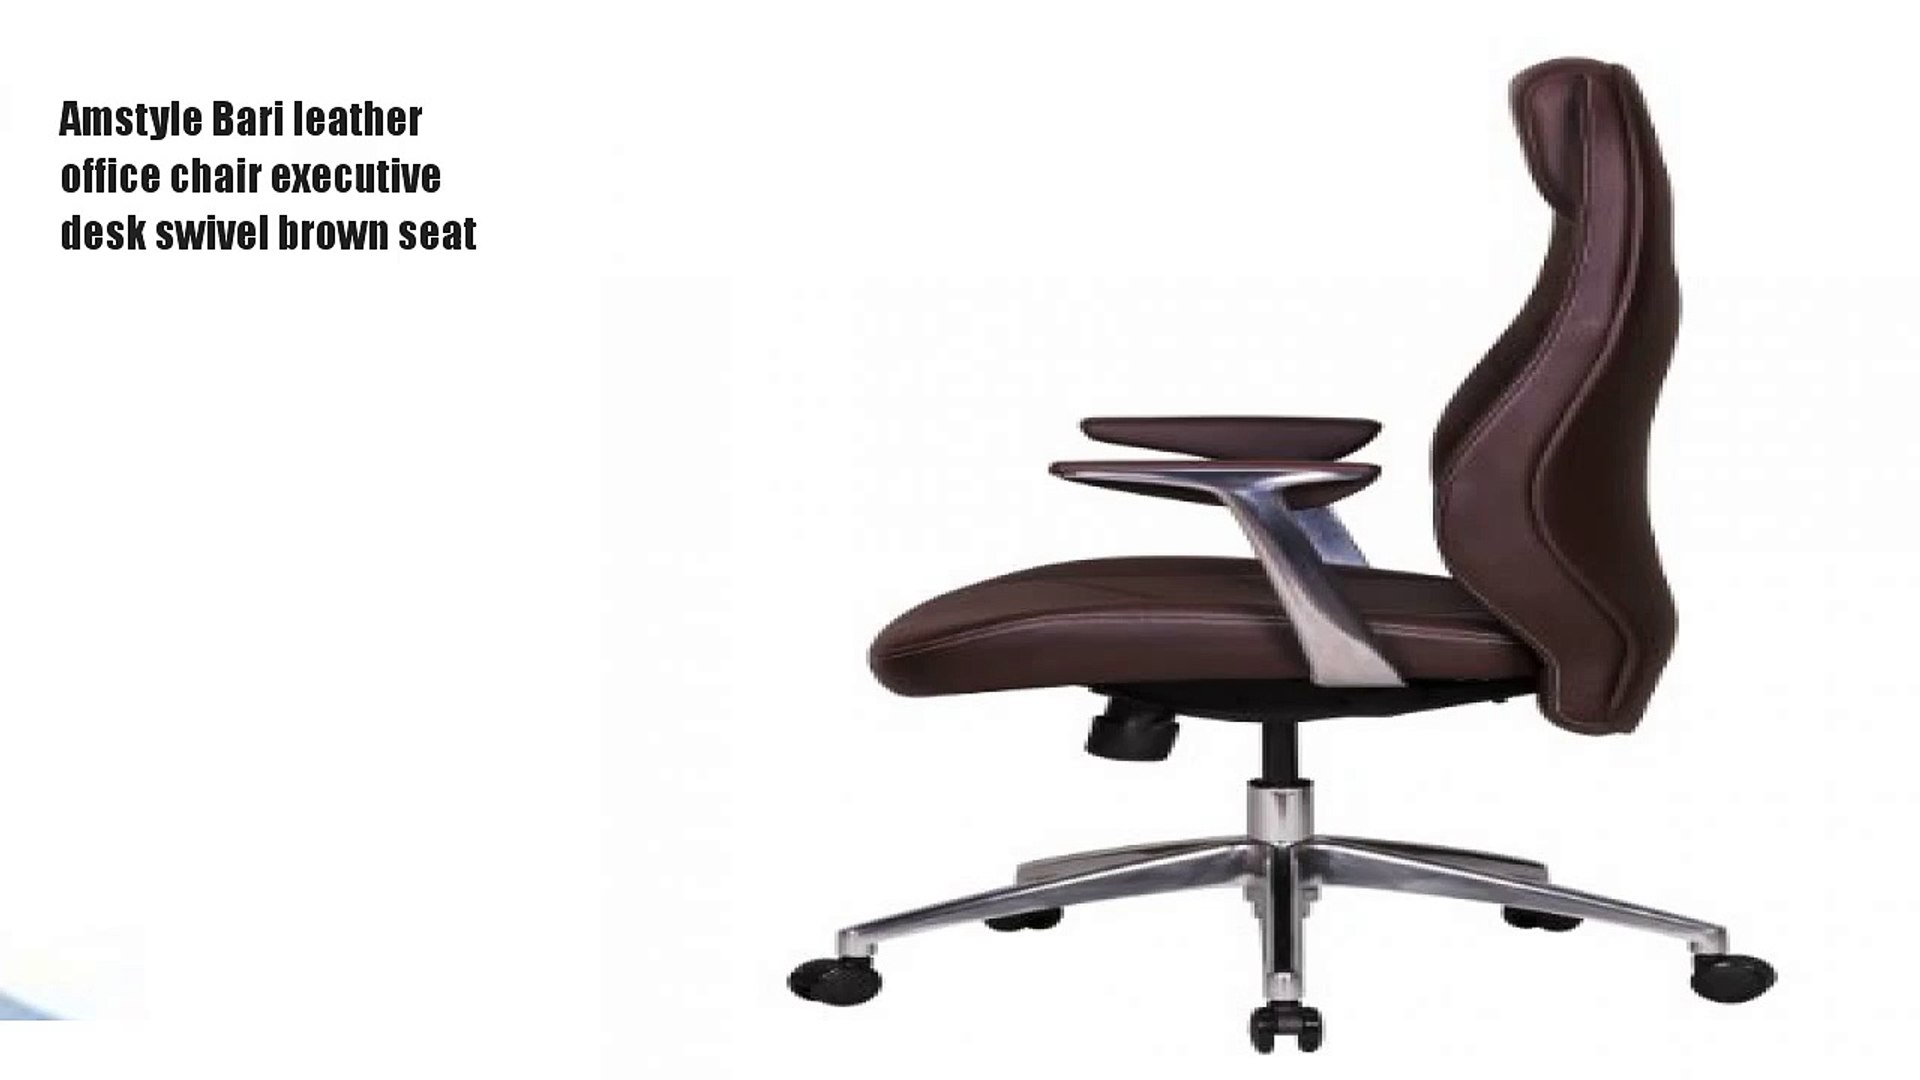 Excellent Amstyle Bari Leather Office Chair Executive Desk Swivel Pabps2019 Chair Design Images Pabps2019Com